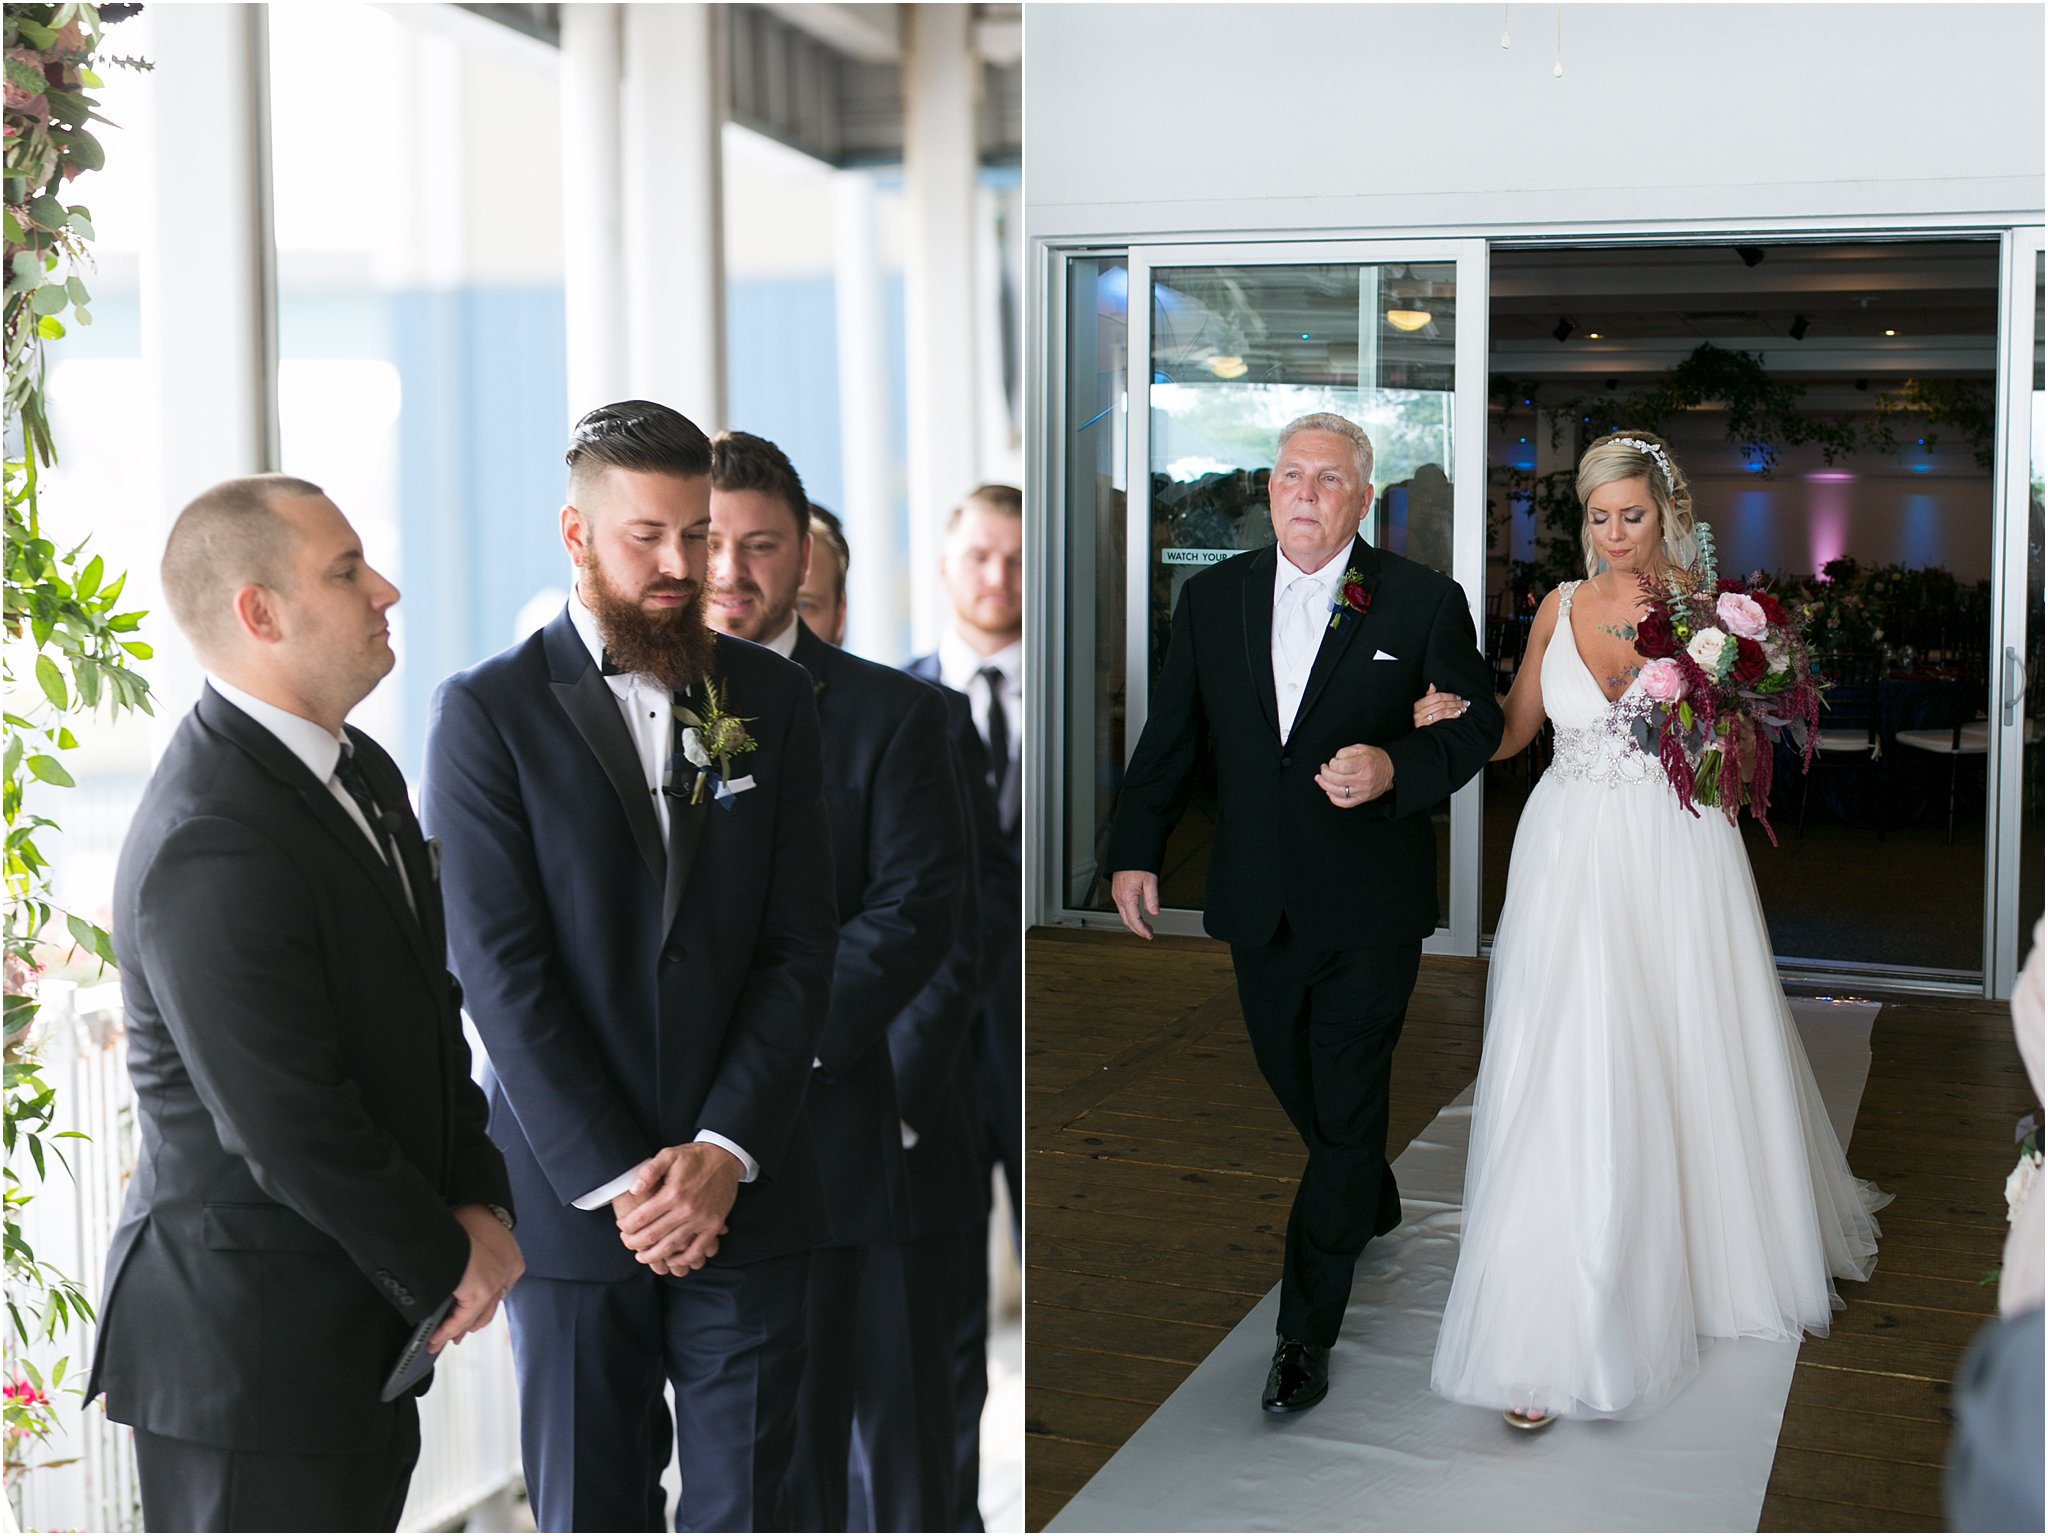 jessica_ryan_photography_virginia_wedding_photographer_candid_authentic_hampton_roads_wedding_photography_marina_shores_yacht_club_first_landing_state_park_woodland_theme_garden_3311